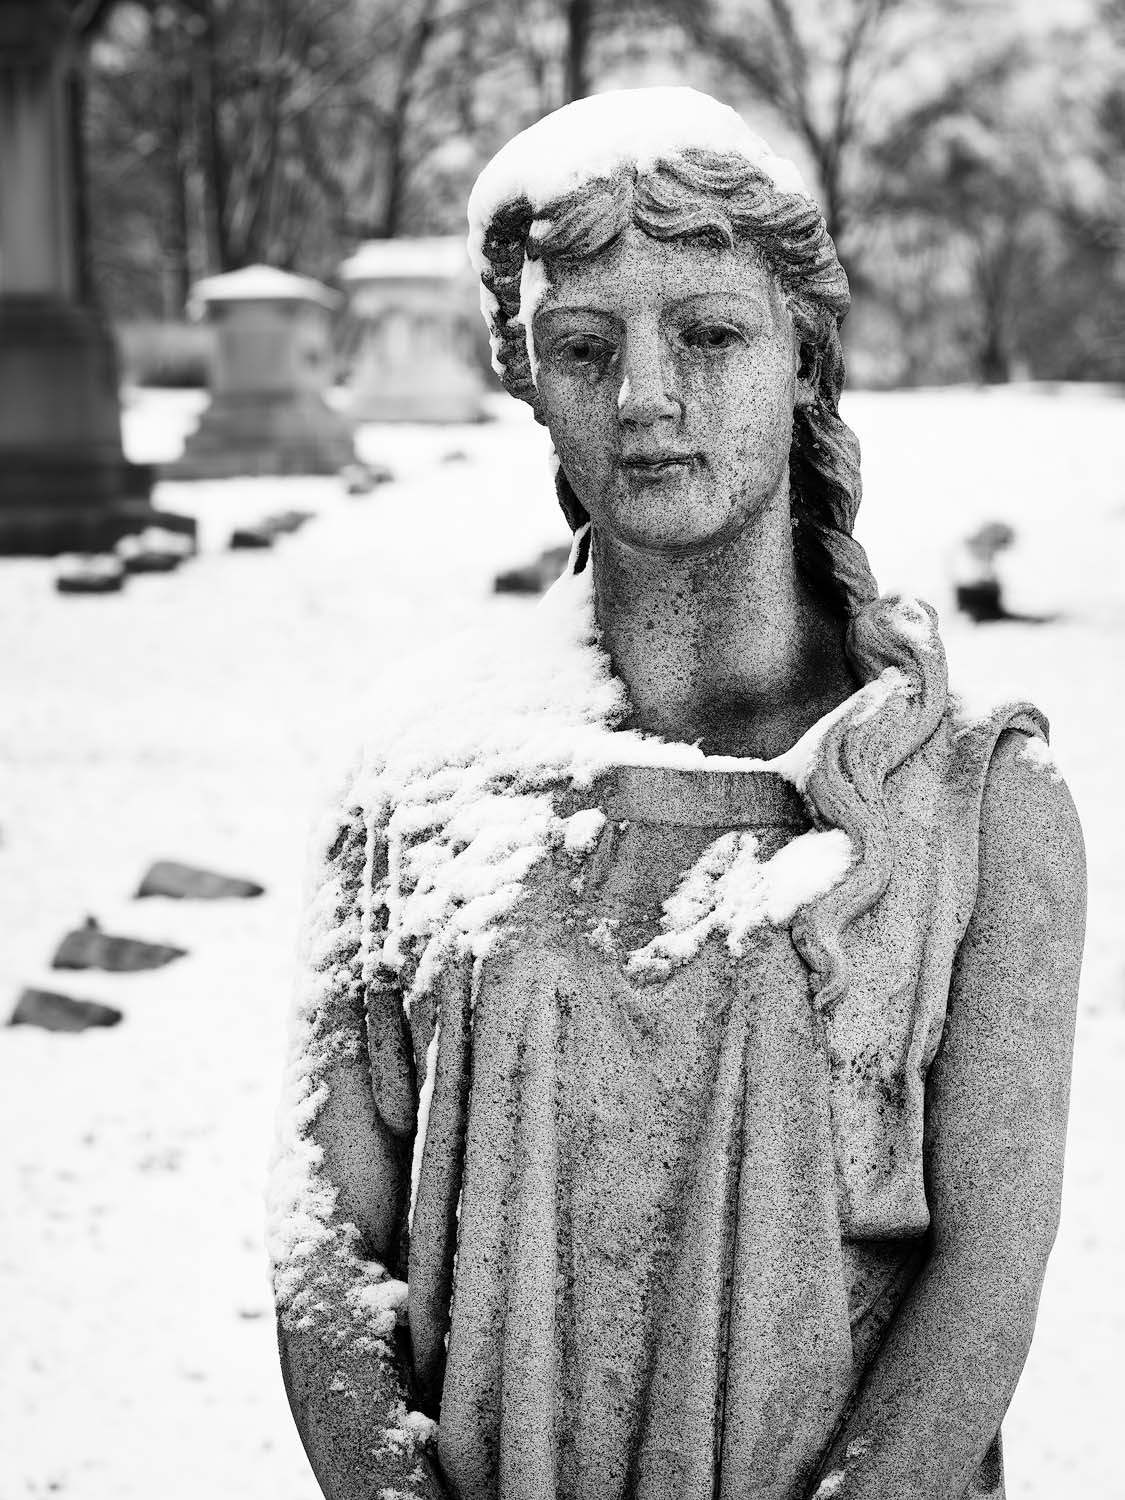 WORLD REGIONS & COUNTRIES, North America, United States of America, Missouri, St. Louis, Calvary Cemetery, architecture, landscape, cemetery, concepts, death, IPTC-SUBJECT, 08000000, 08005000, 0800500, photo